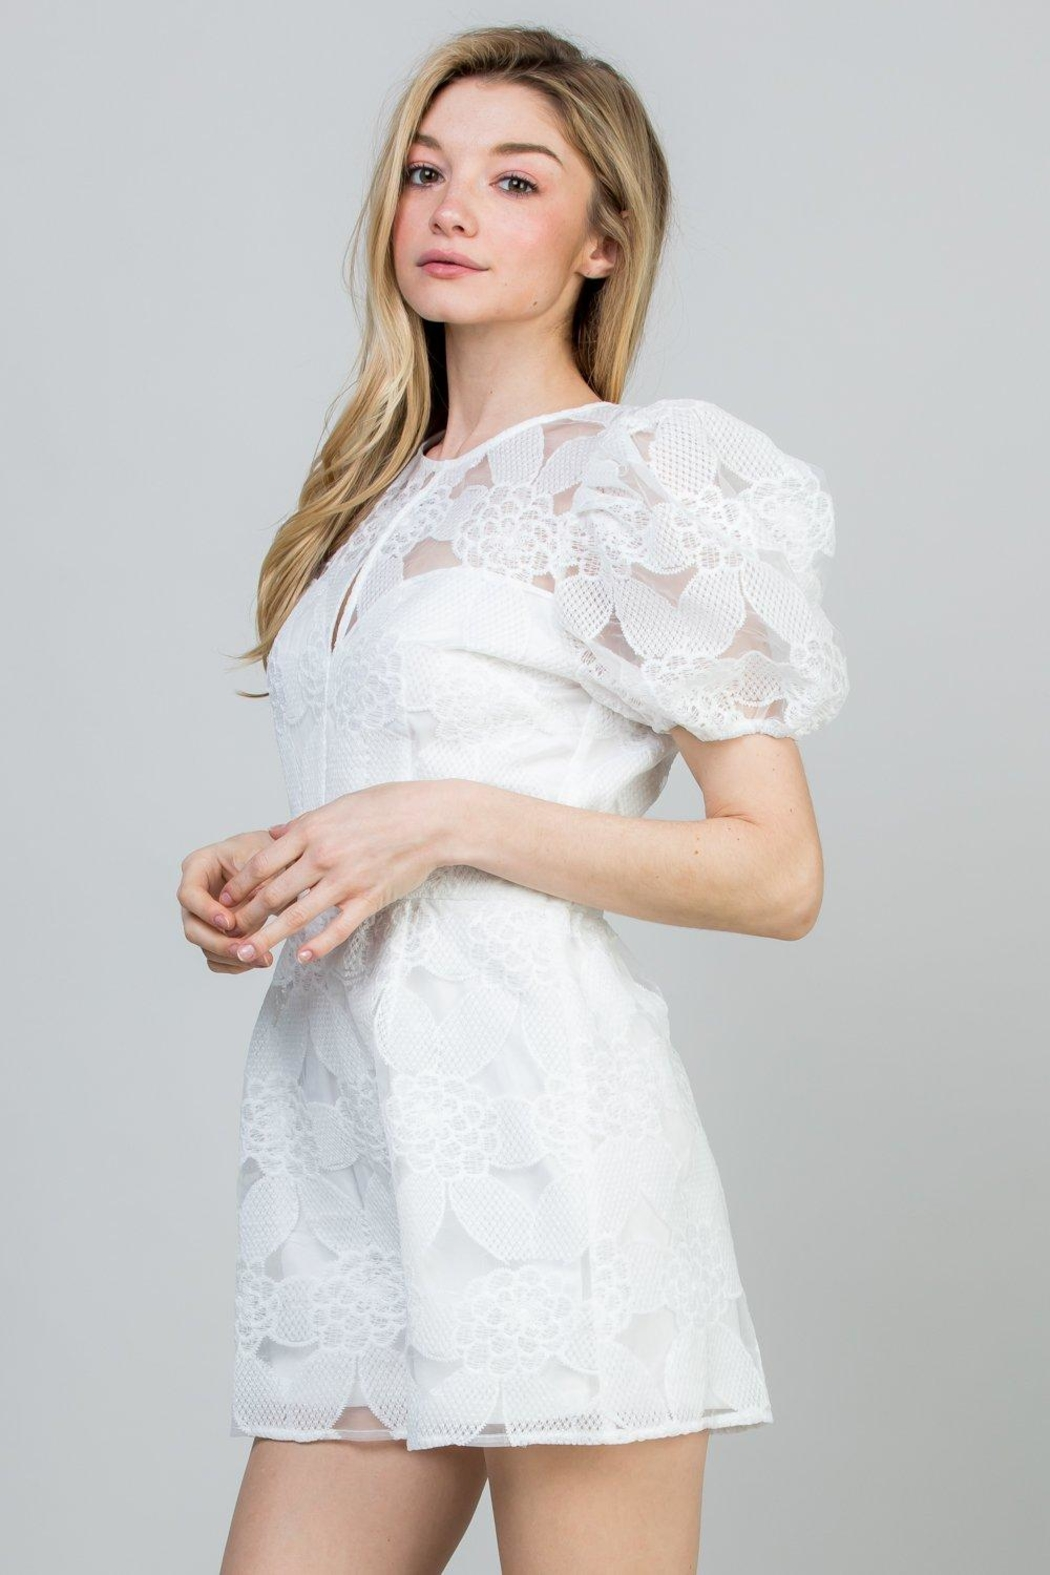 efe4fc5d935 A Peach White Lace Romper from New York by Dor L Dor — Shoptiques